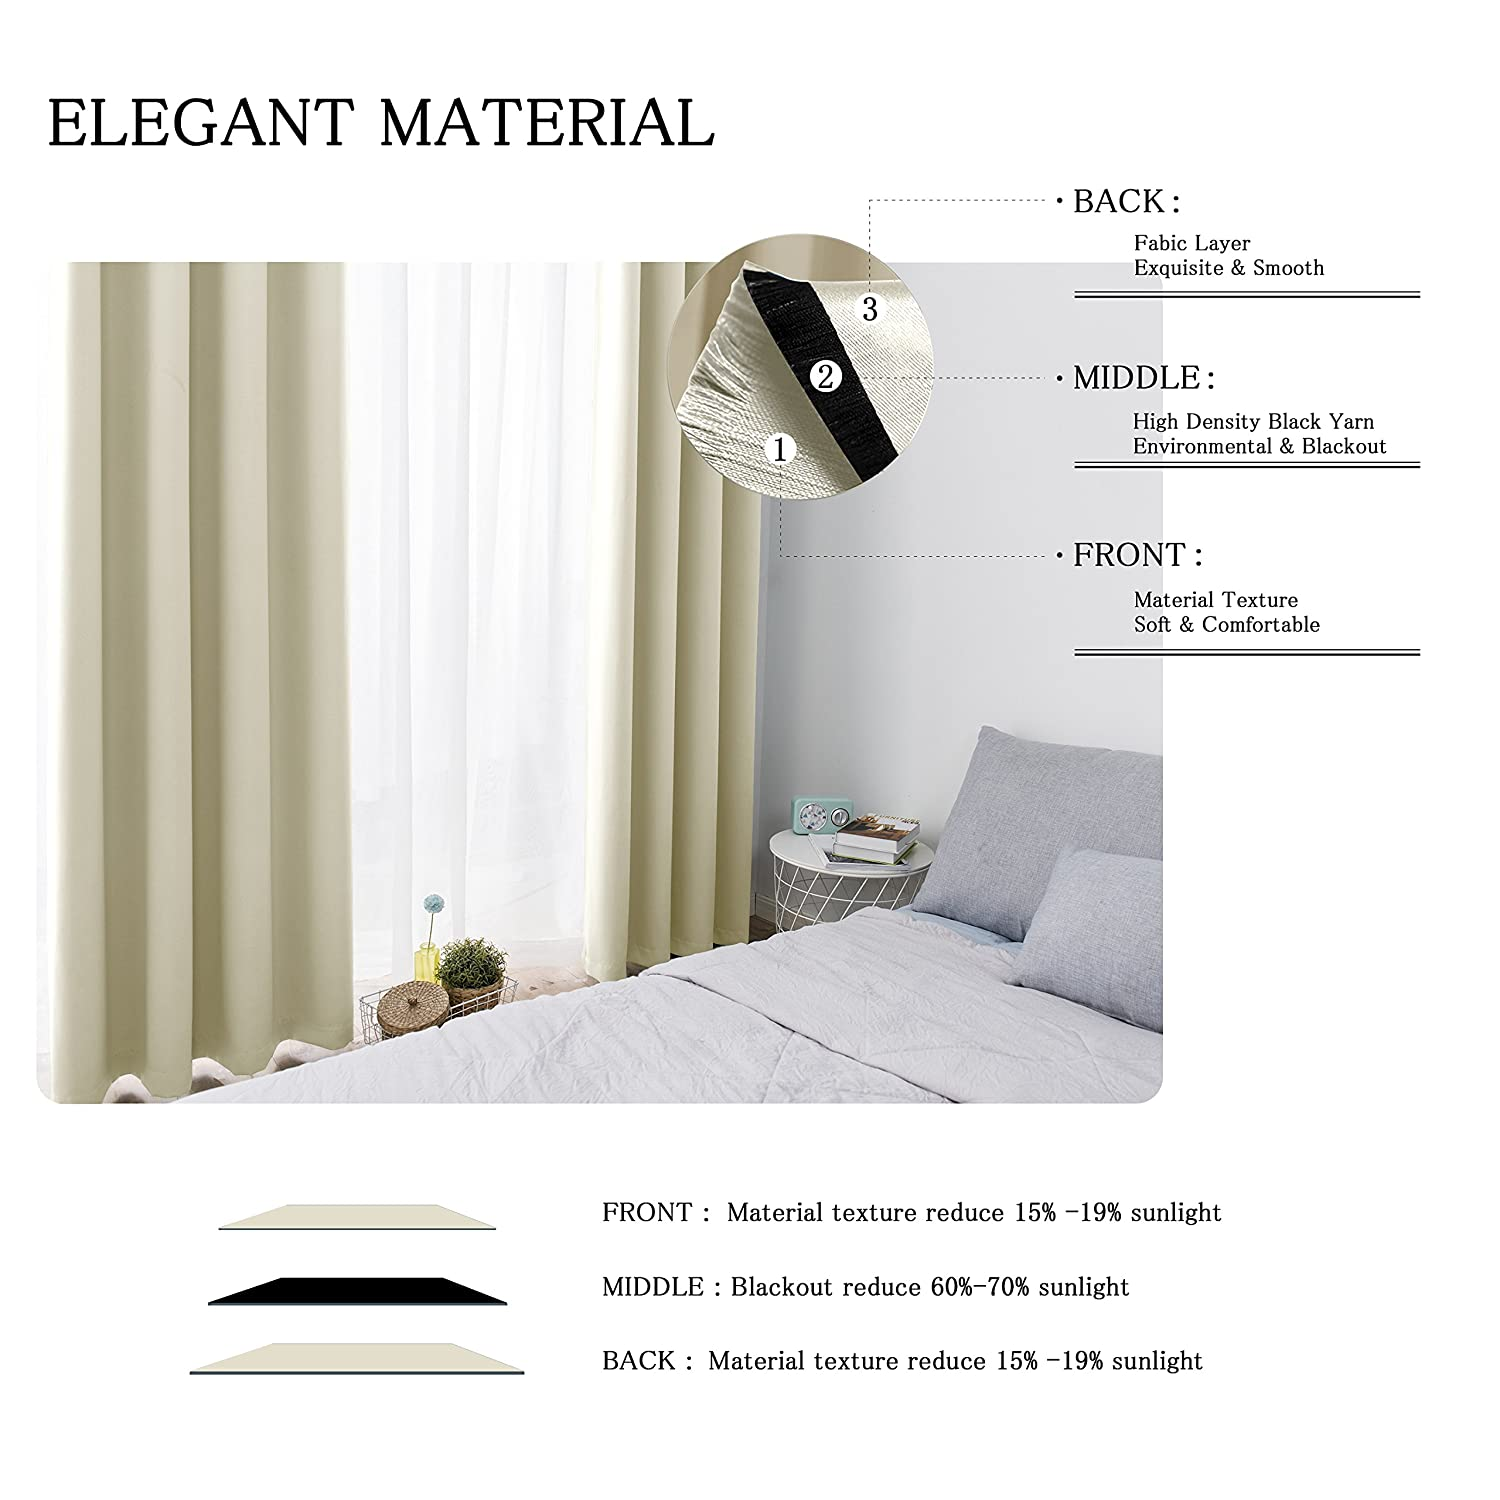 52 x 95 inch 2 Panels Grey Thermal Insulated Curtain with Grommet Top WONTEX Blackout Curtains for Bedroom